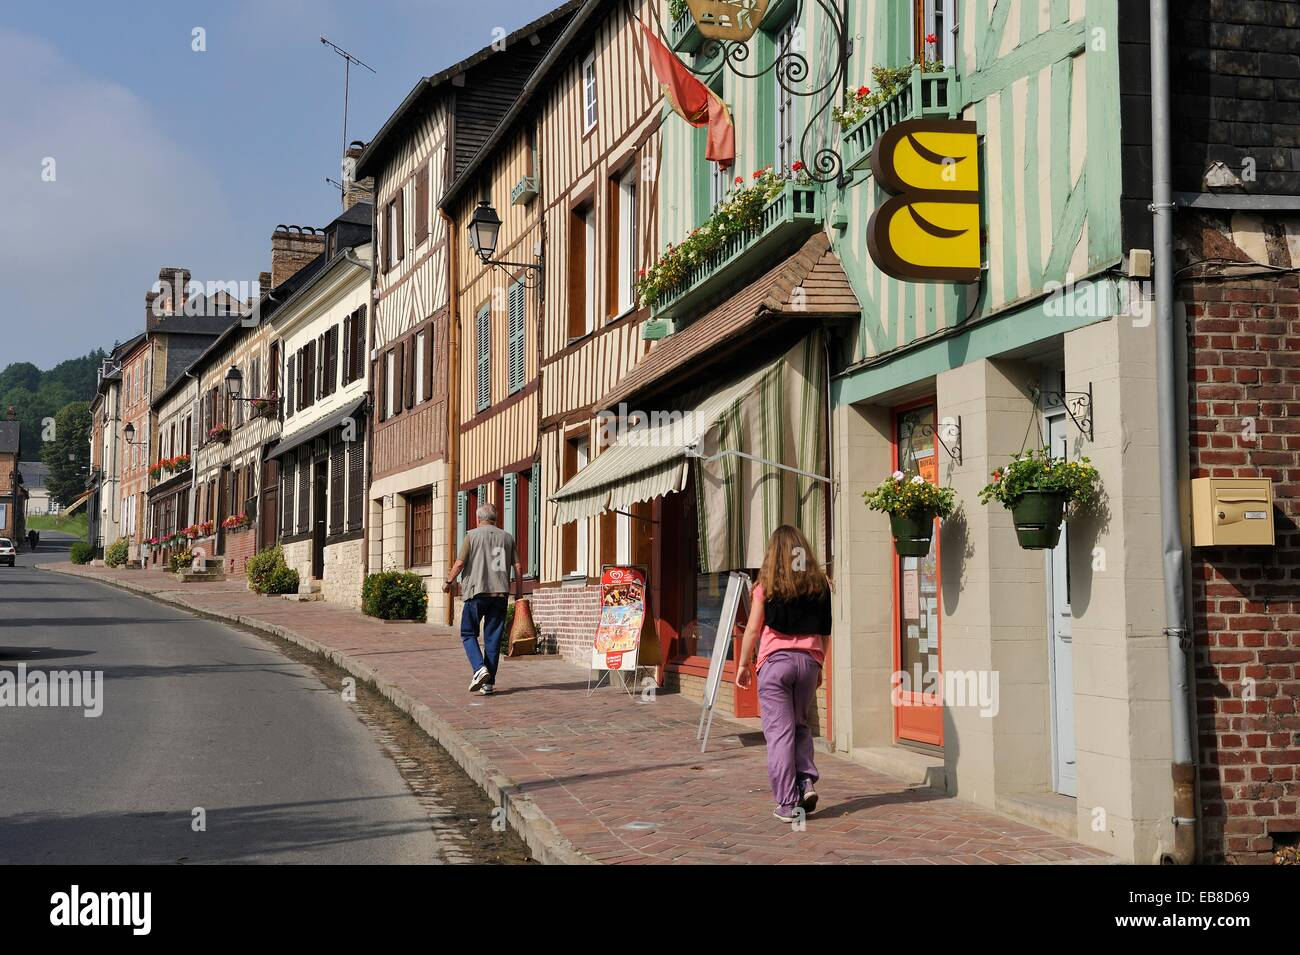 Calvados France Climate Blangy Stock Photos And Blangy Stock Images Alamy